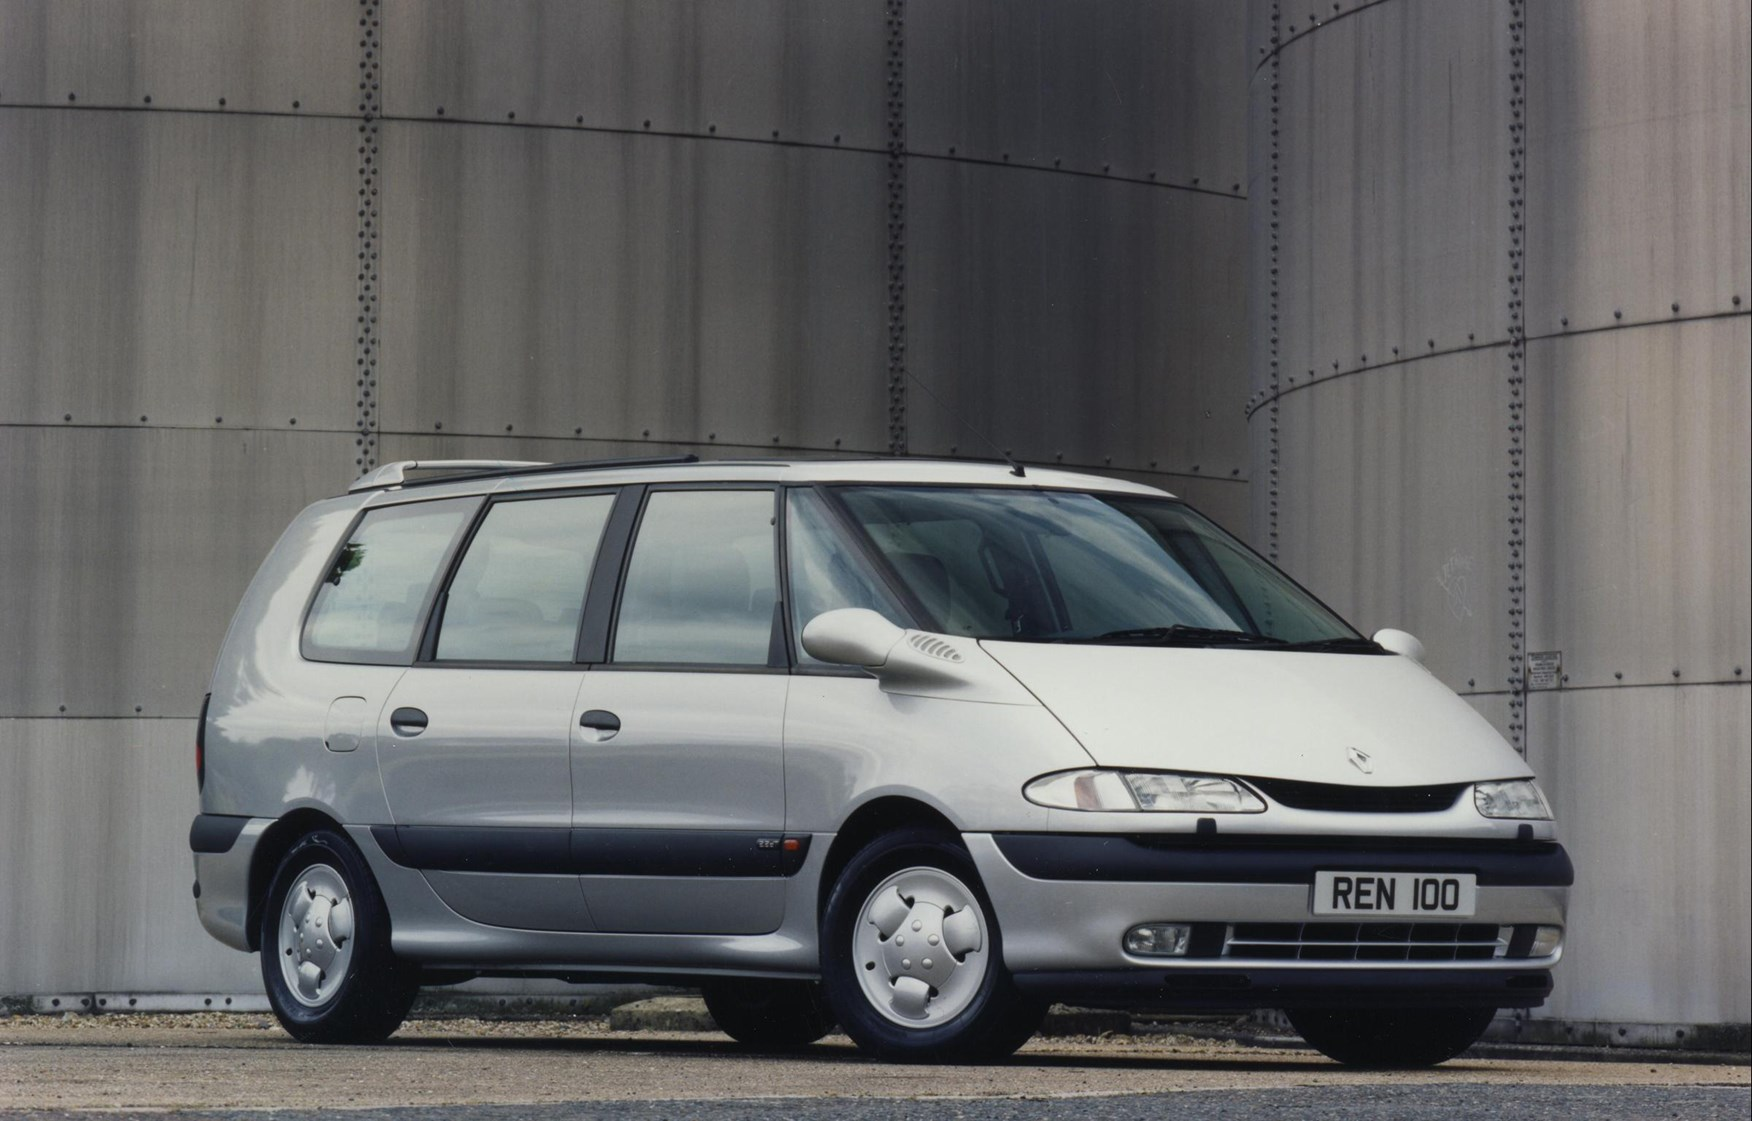 Renault Grand Espace Estate (1998 - 2003) Photos | Parkers